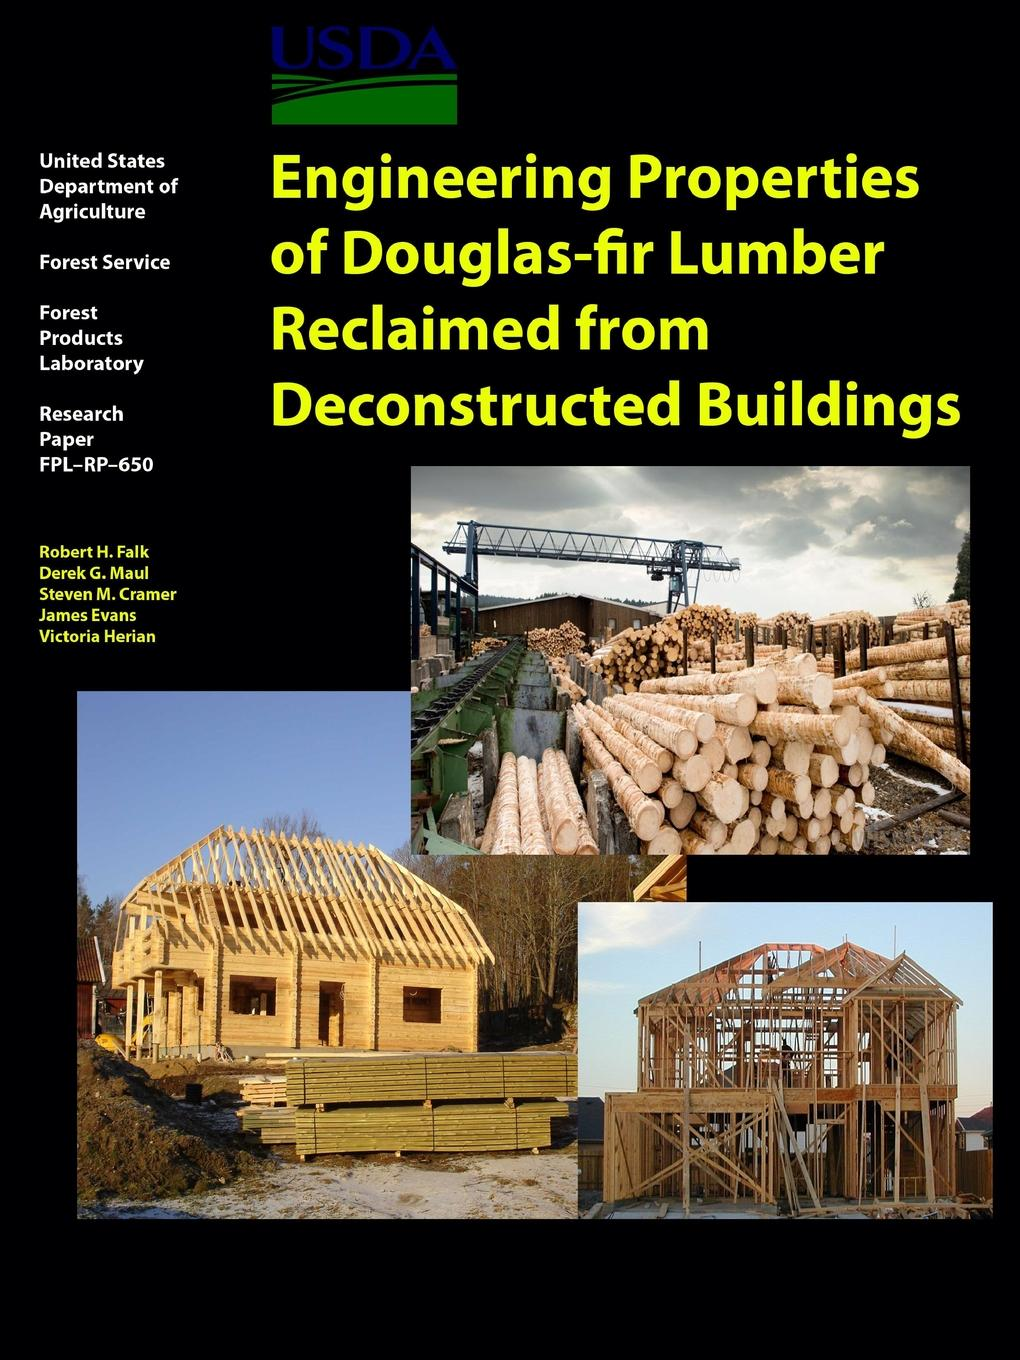 Department of Agriculture United States Engineering Properties of Douglas-fir Lumber Reclaimed from Deconstructed Buildings цена